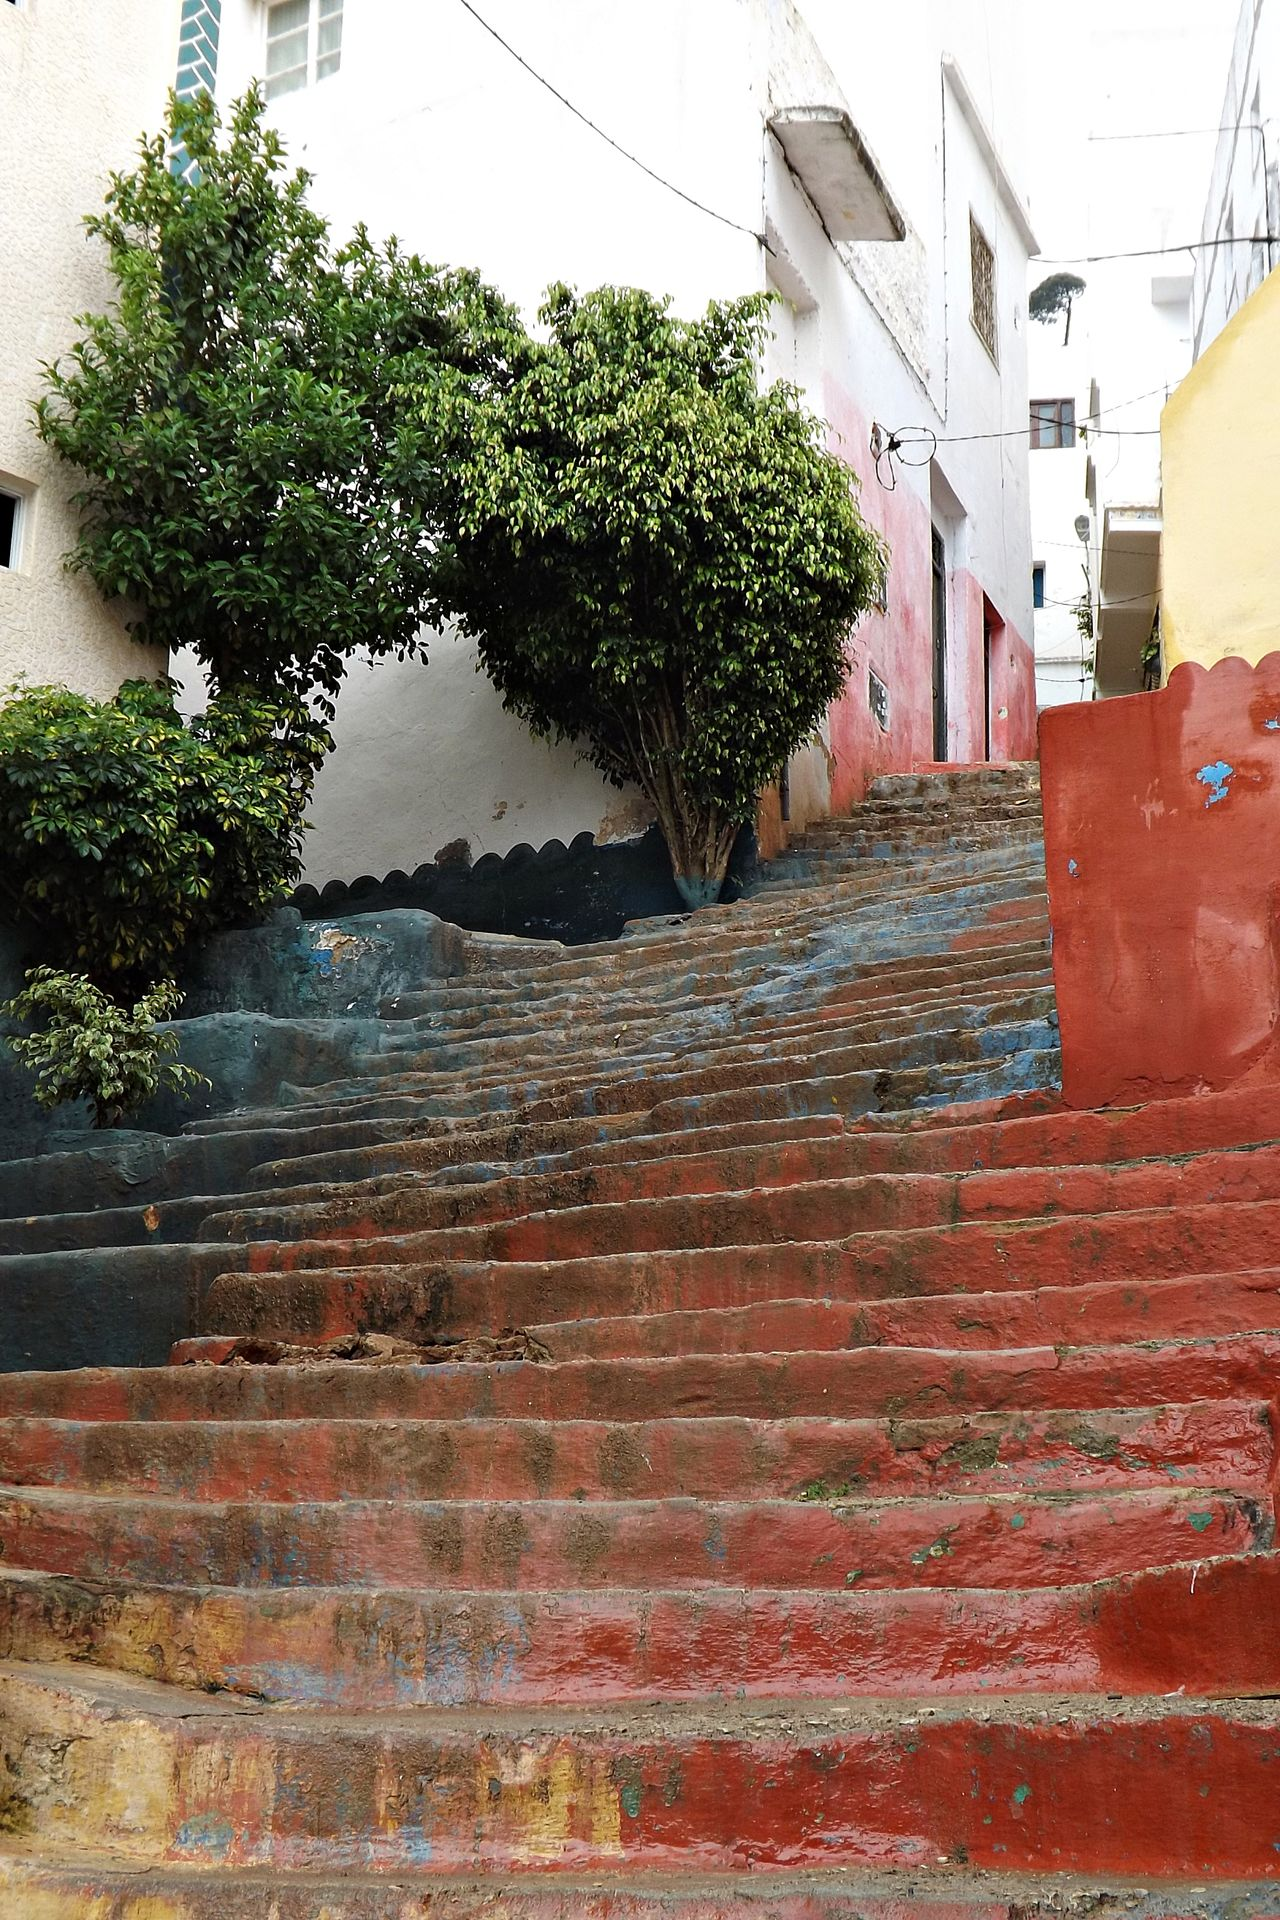 Ancienne Maisons Architecture Building Exterior Built Structure Cable City Day Escaliers Growth Maroc Nature No People Outdoors Plant Plantes Rue Ruelle Sky Tree